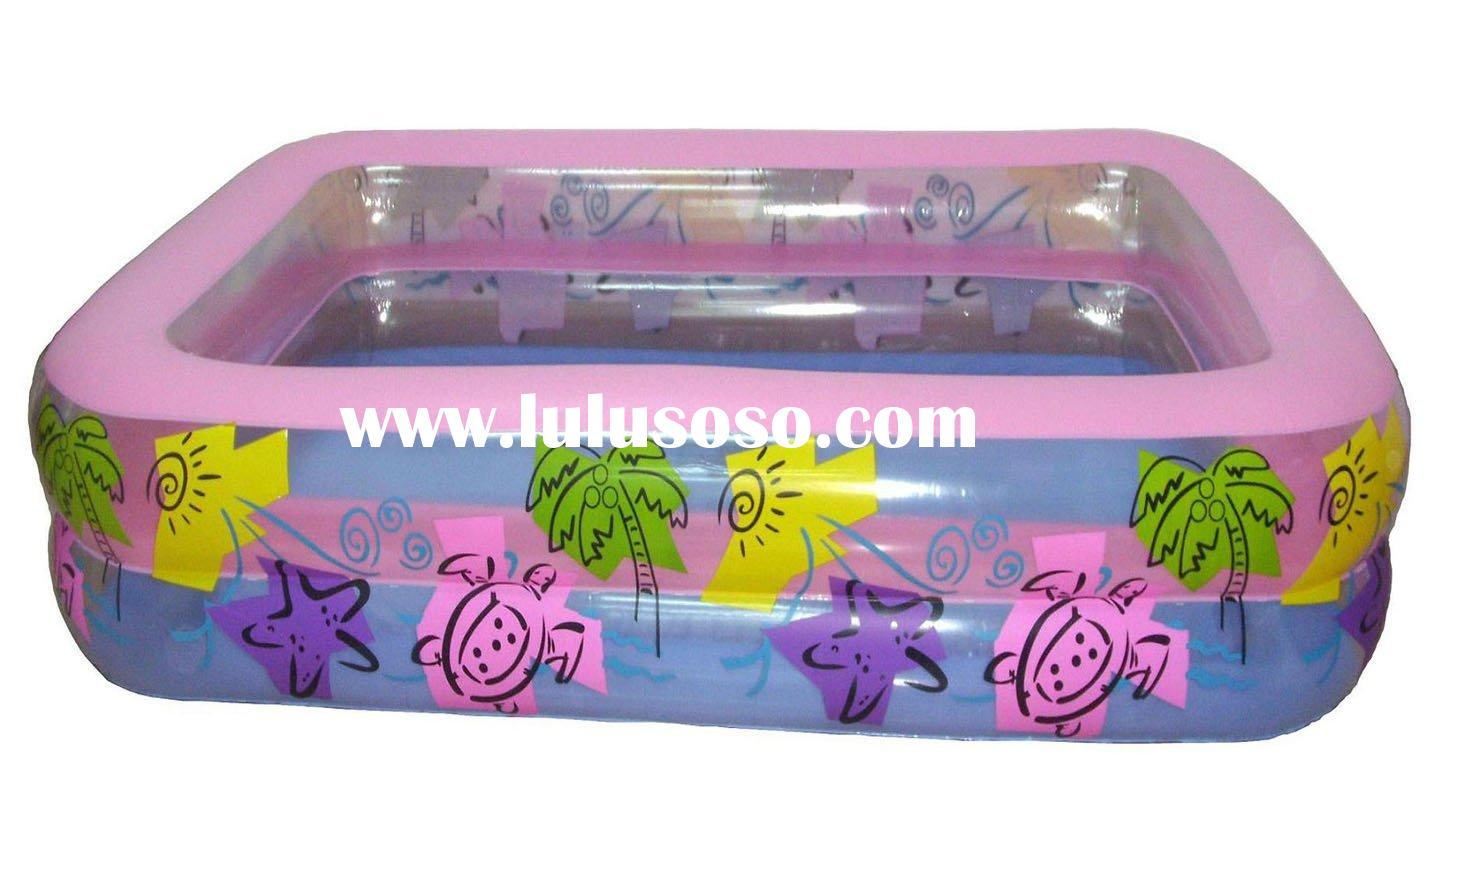 inflatable swimming pool, inflatable pool, children's swimming pool, inflatable water pool,